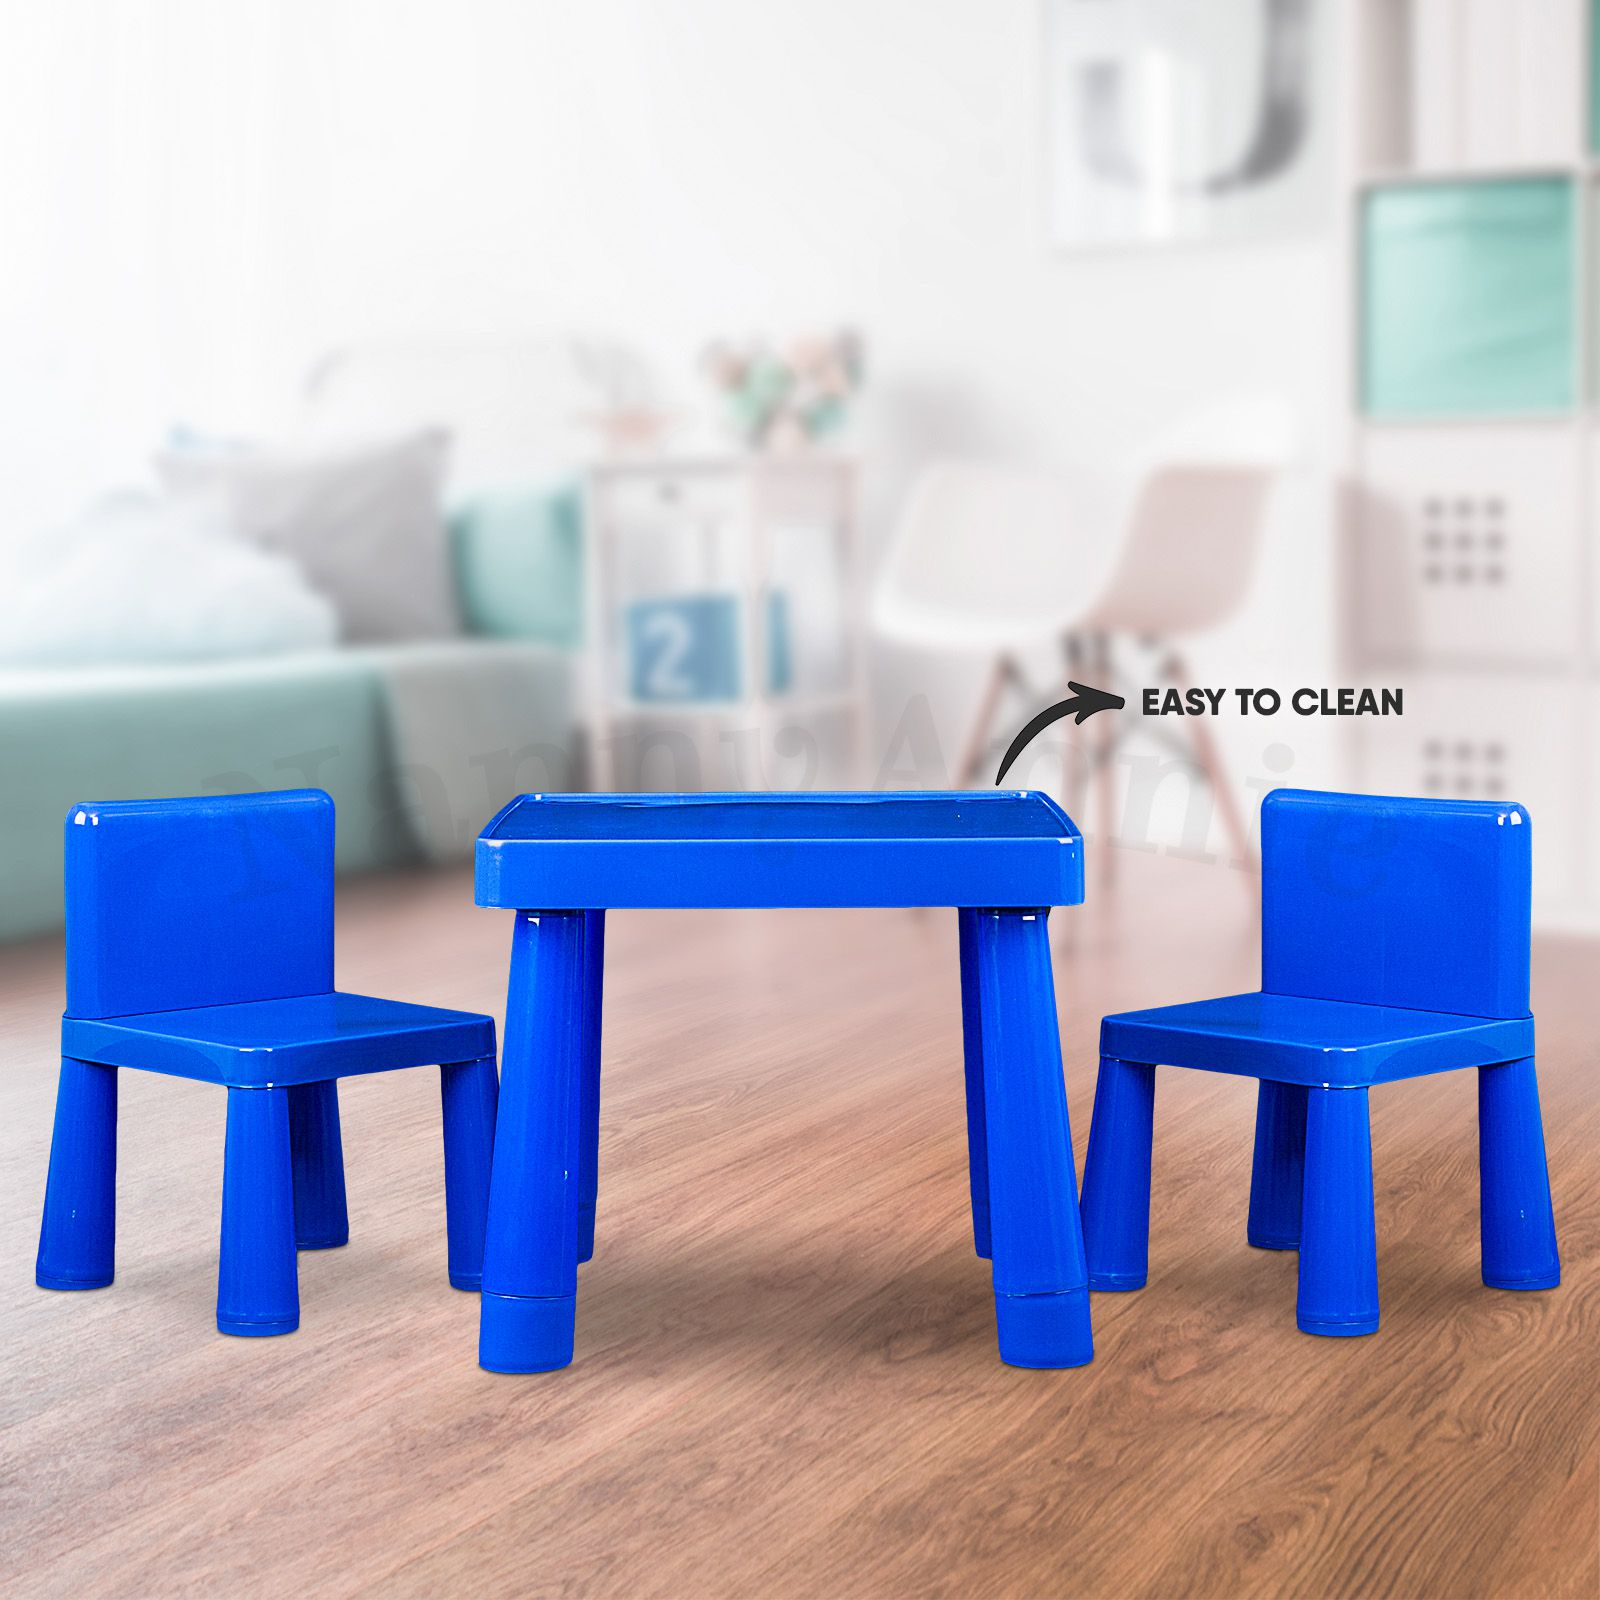 Sensational Kids Table Chair Play Furniture Set Plastic Fountain Activity Dining Chairs Interior Design Ideas Gresisoteloinfo